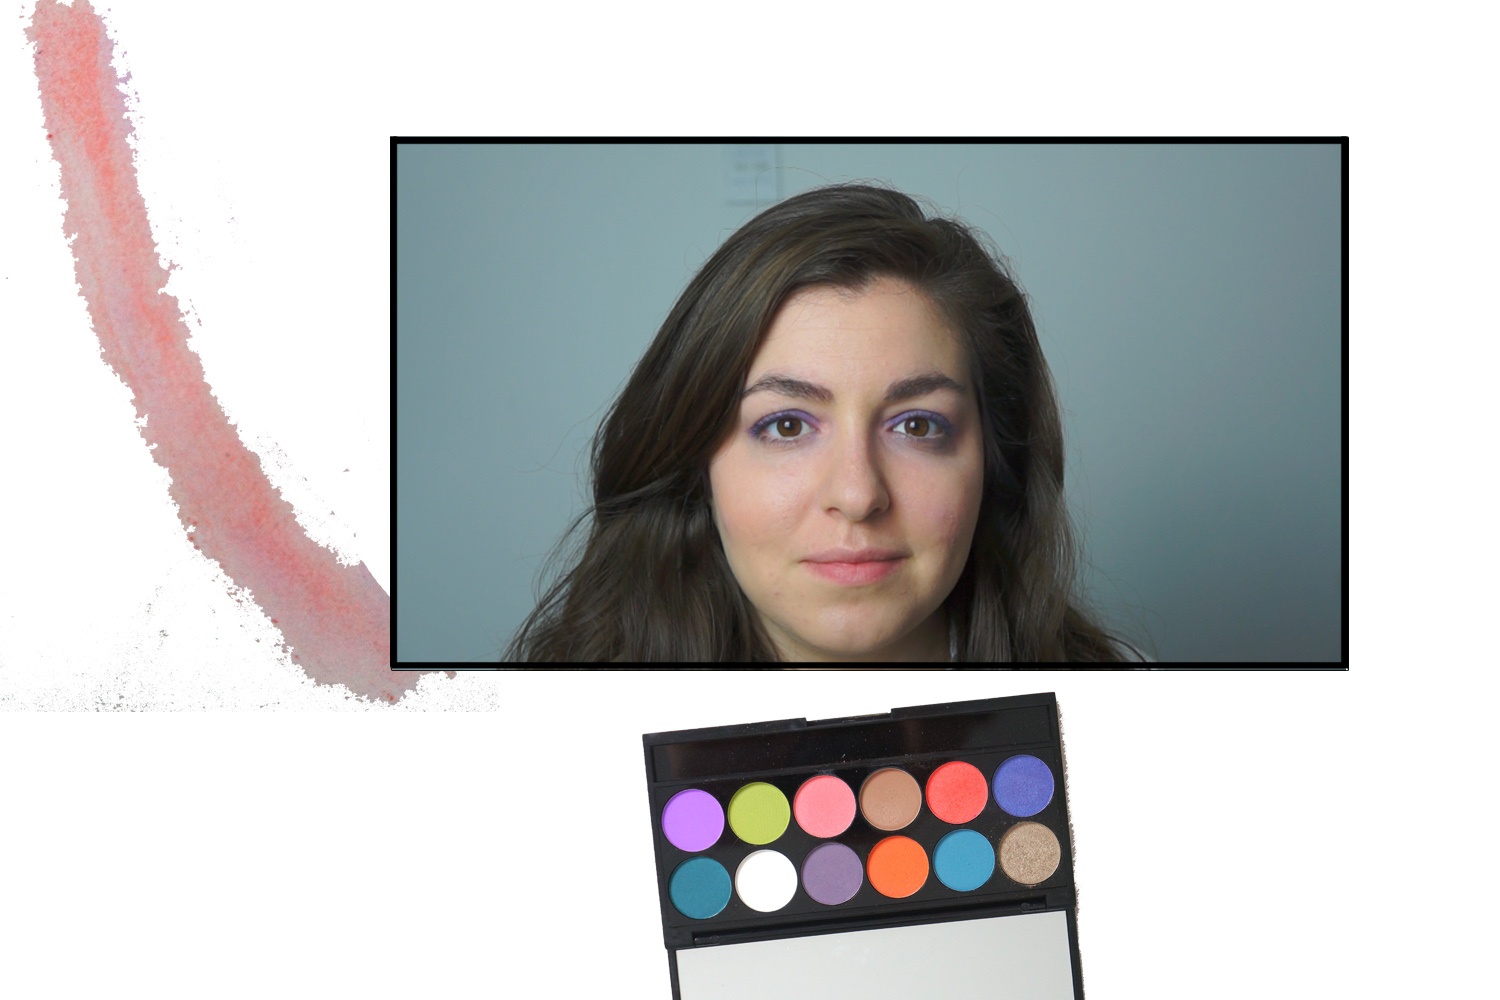 How To Create 5 S/S 17 Coloured Eyeshadow